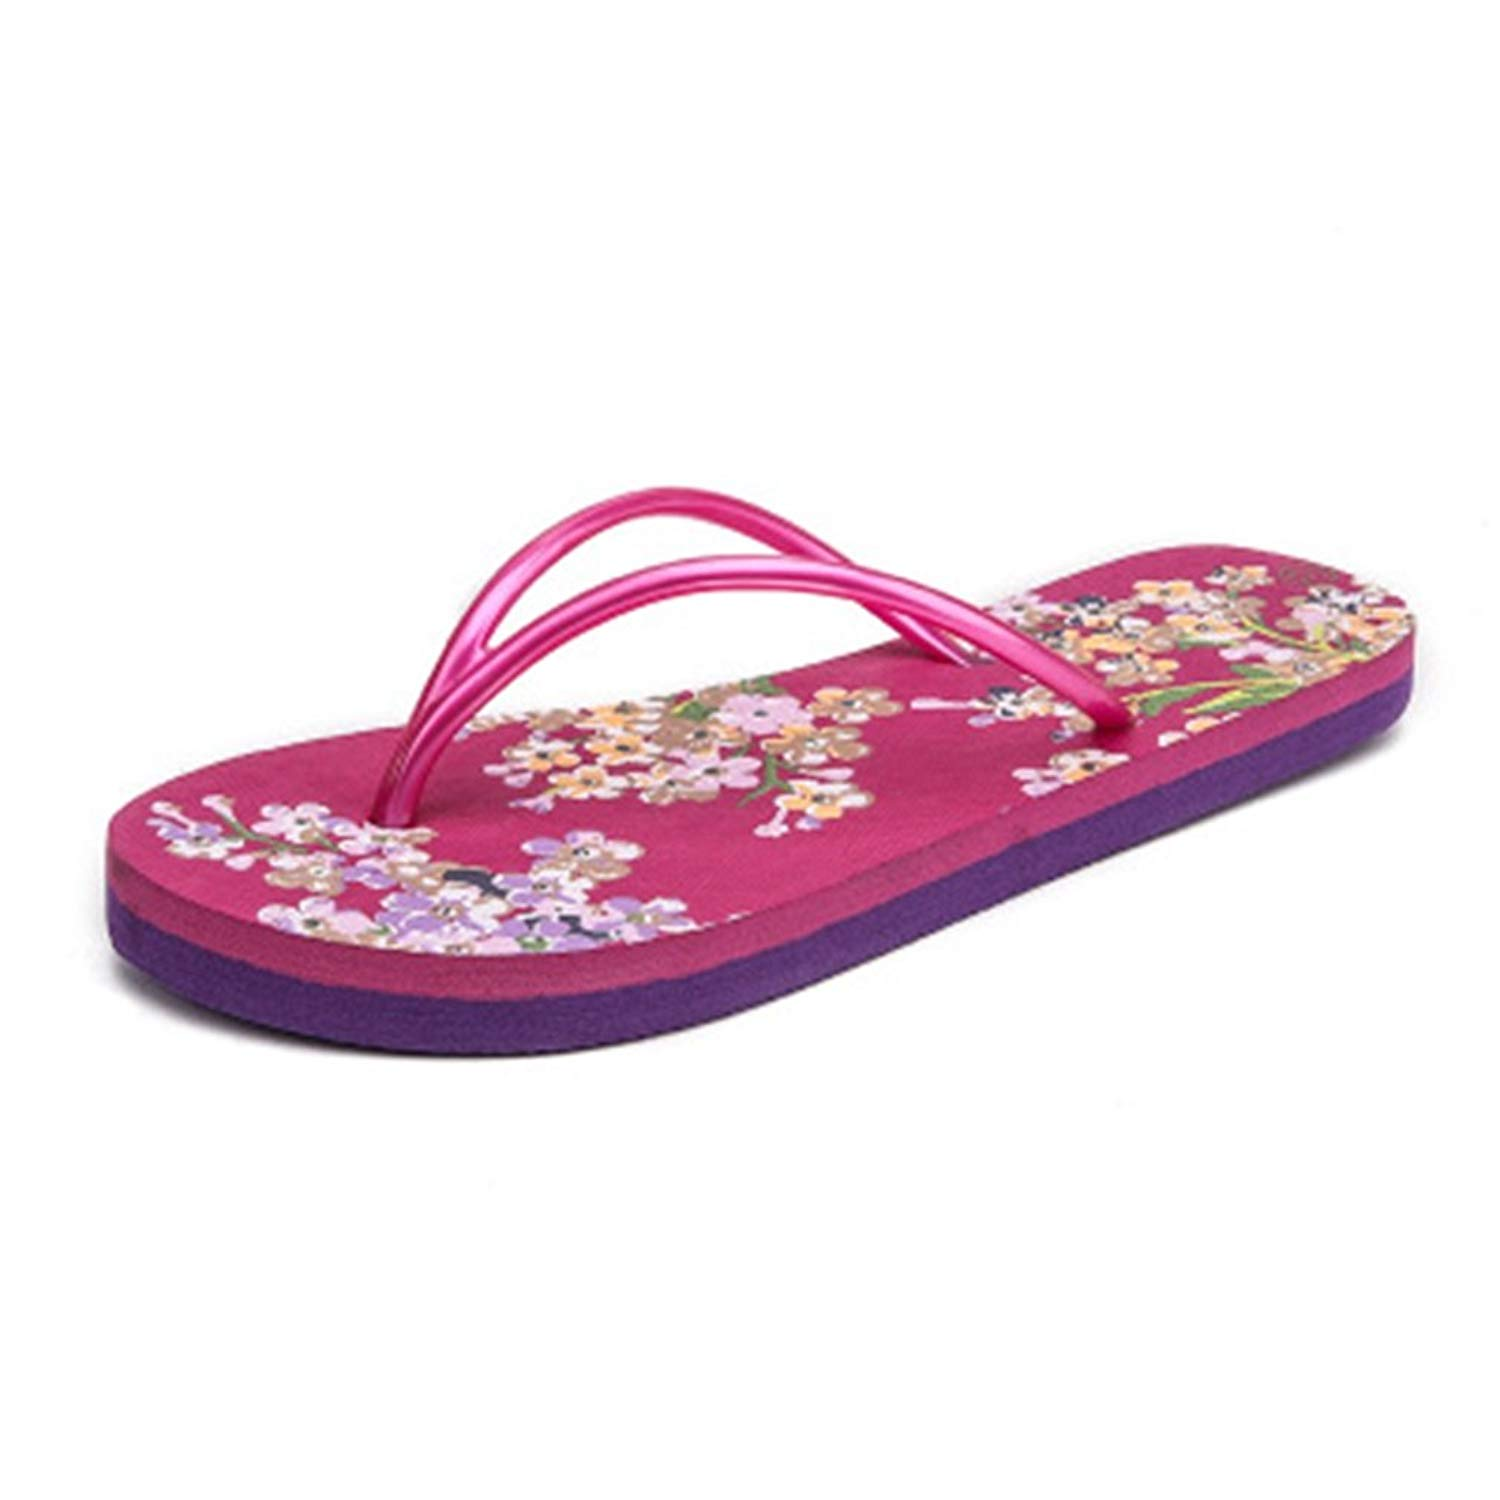 4867b643cabd Get Quotations · GIY Womens Fashion Florals Beach Flip Flops Sandals Flat  Comfort Soft Platform Ladies Summer Thong Slipper